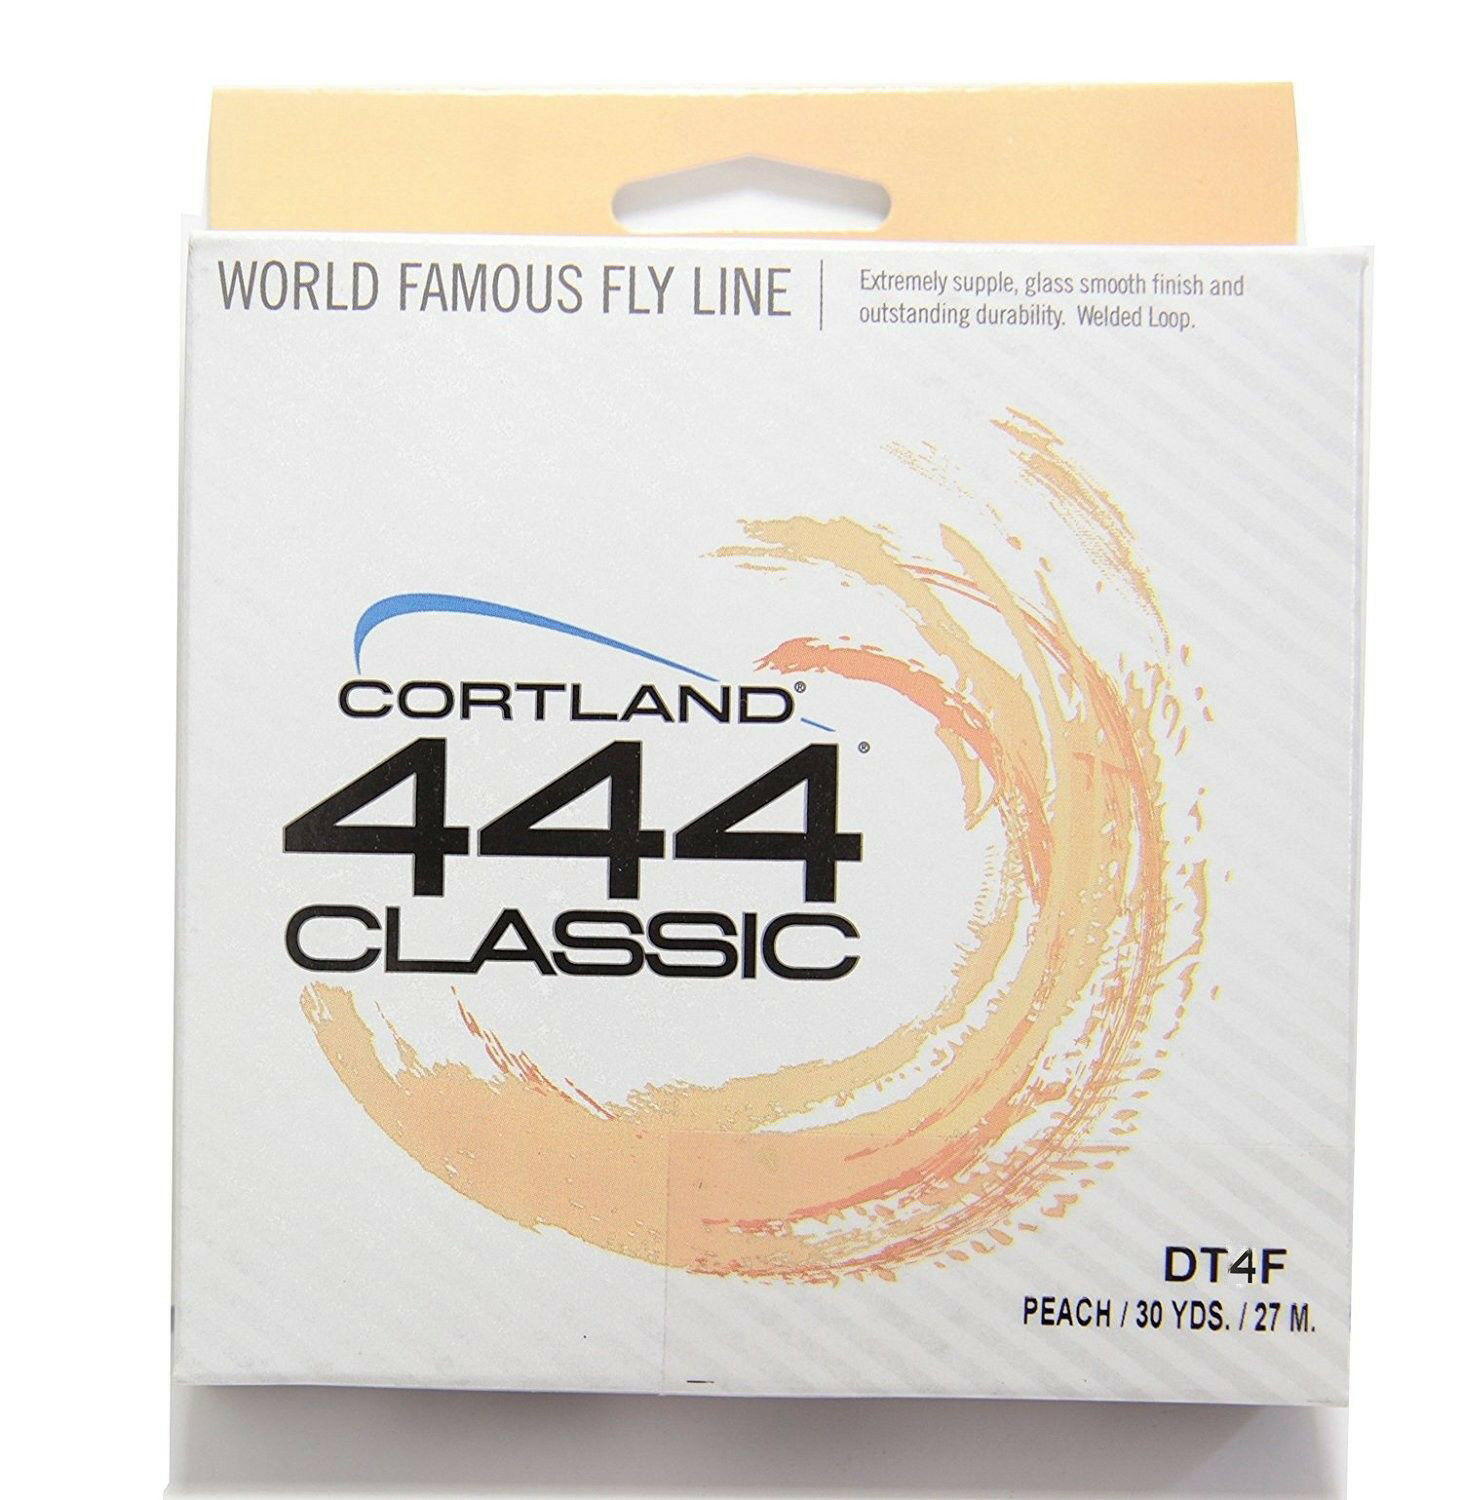 Floating Fly Line Cortland Cortland Line 444 (DT3F/DT4F/DT5F) - NEW 08bced